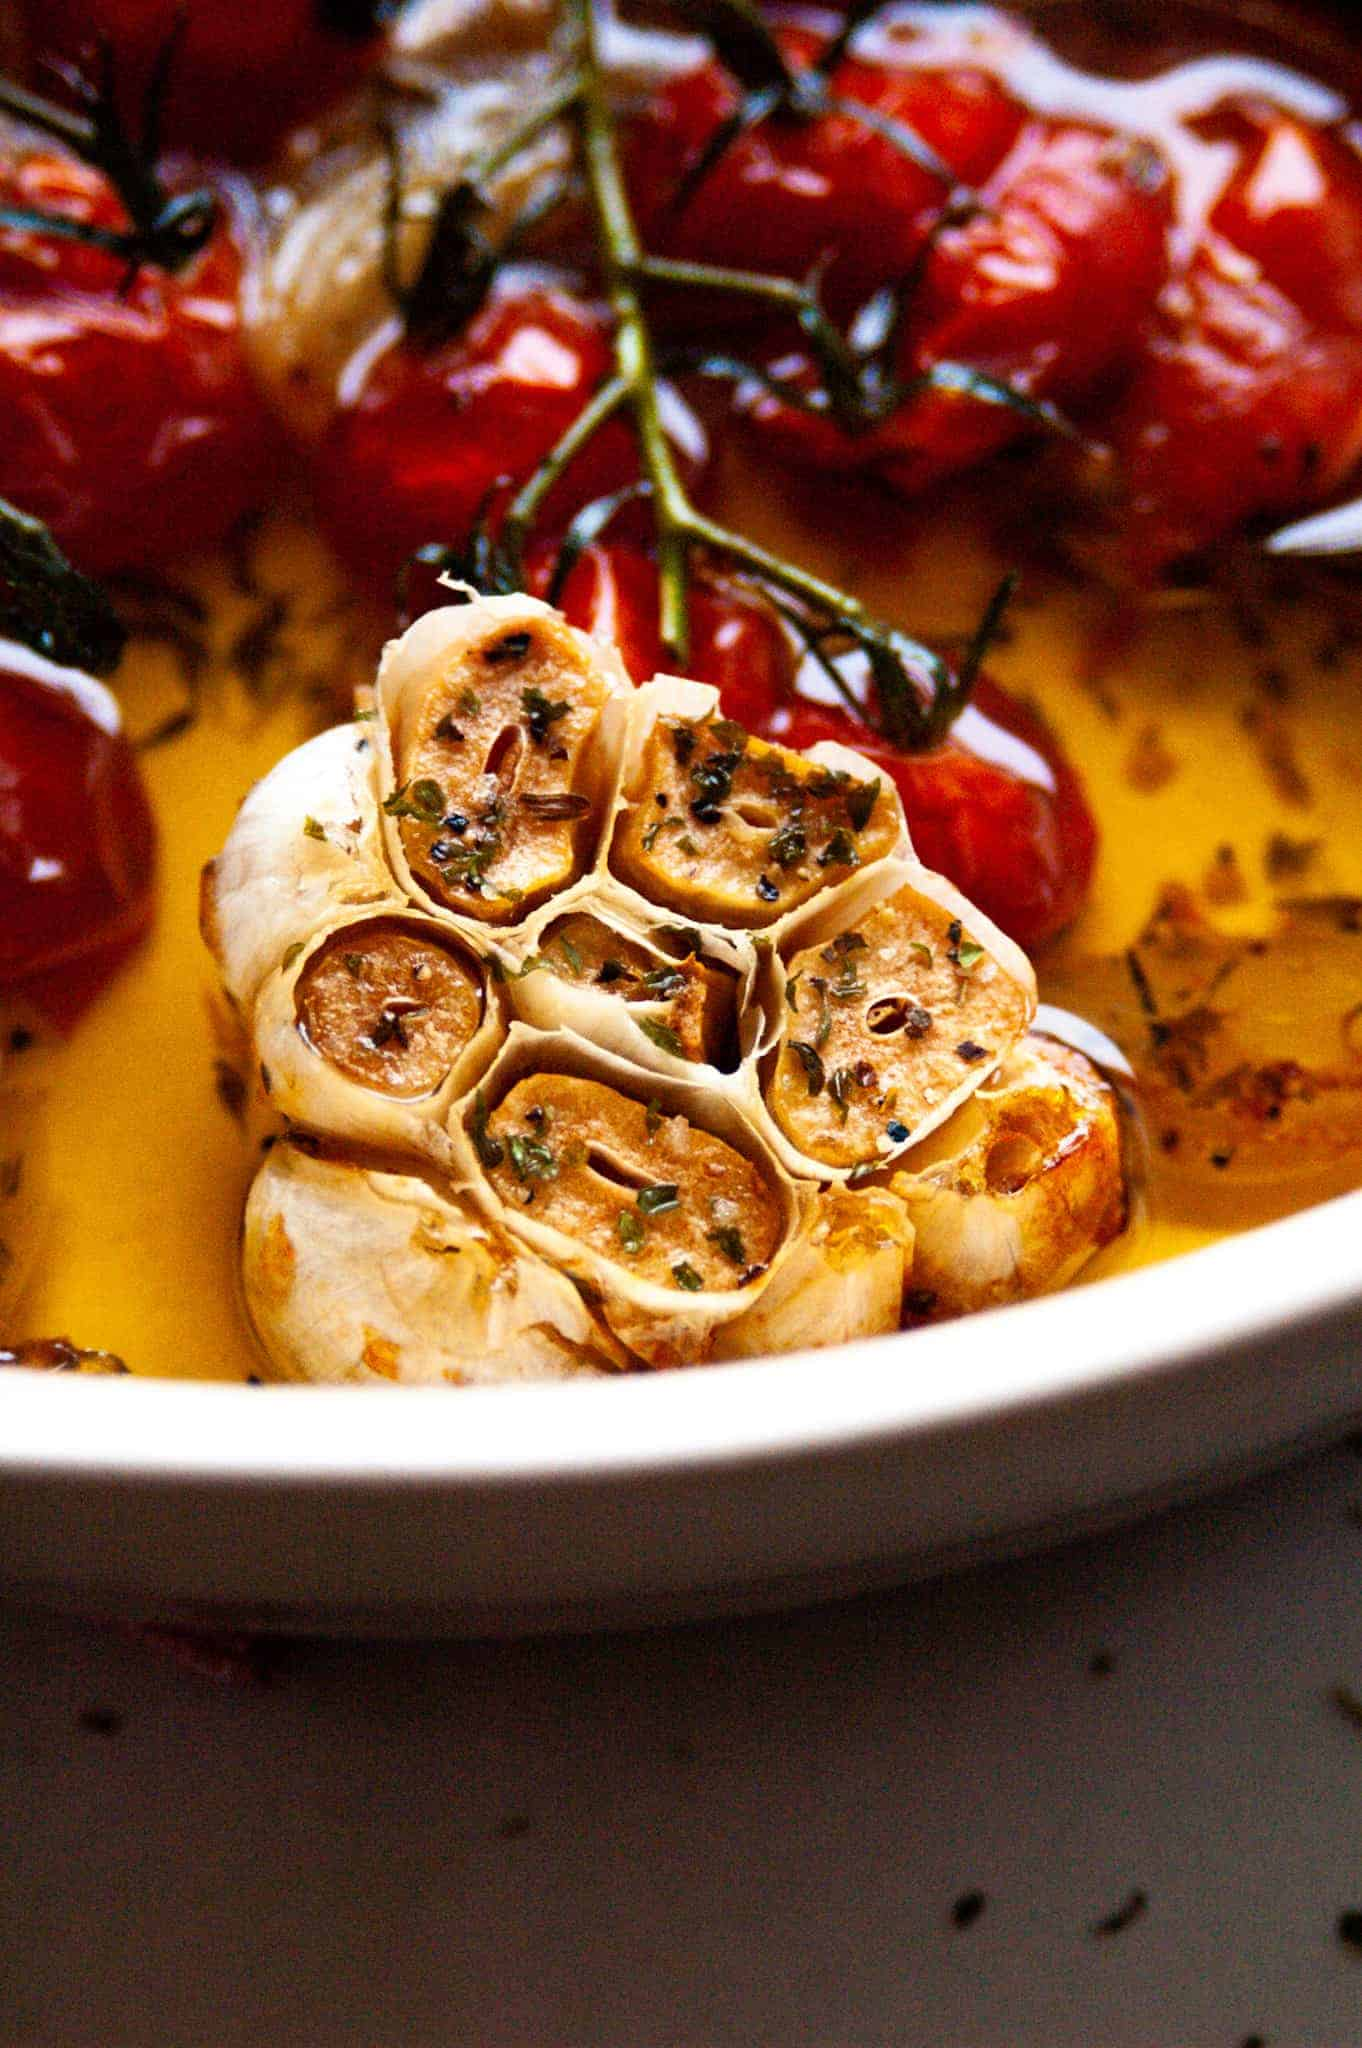 roasted garlic and tomatoes in olive oil